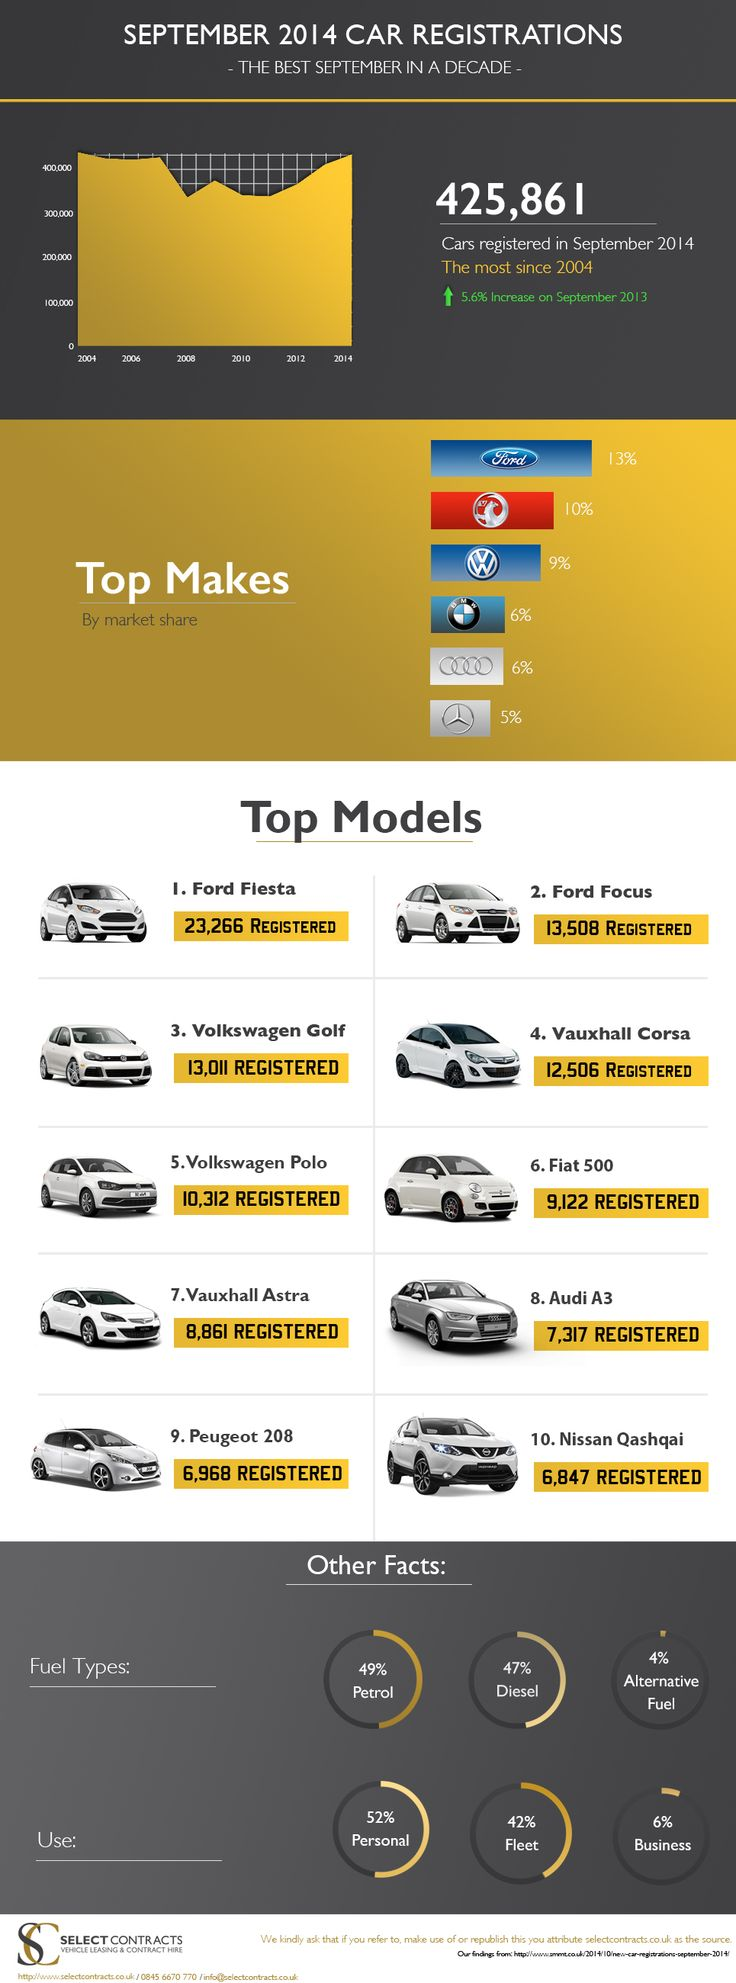 new car releases september 2014Die 25 besten Ideen zu Registration car auf Pinterest